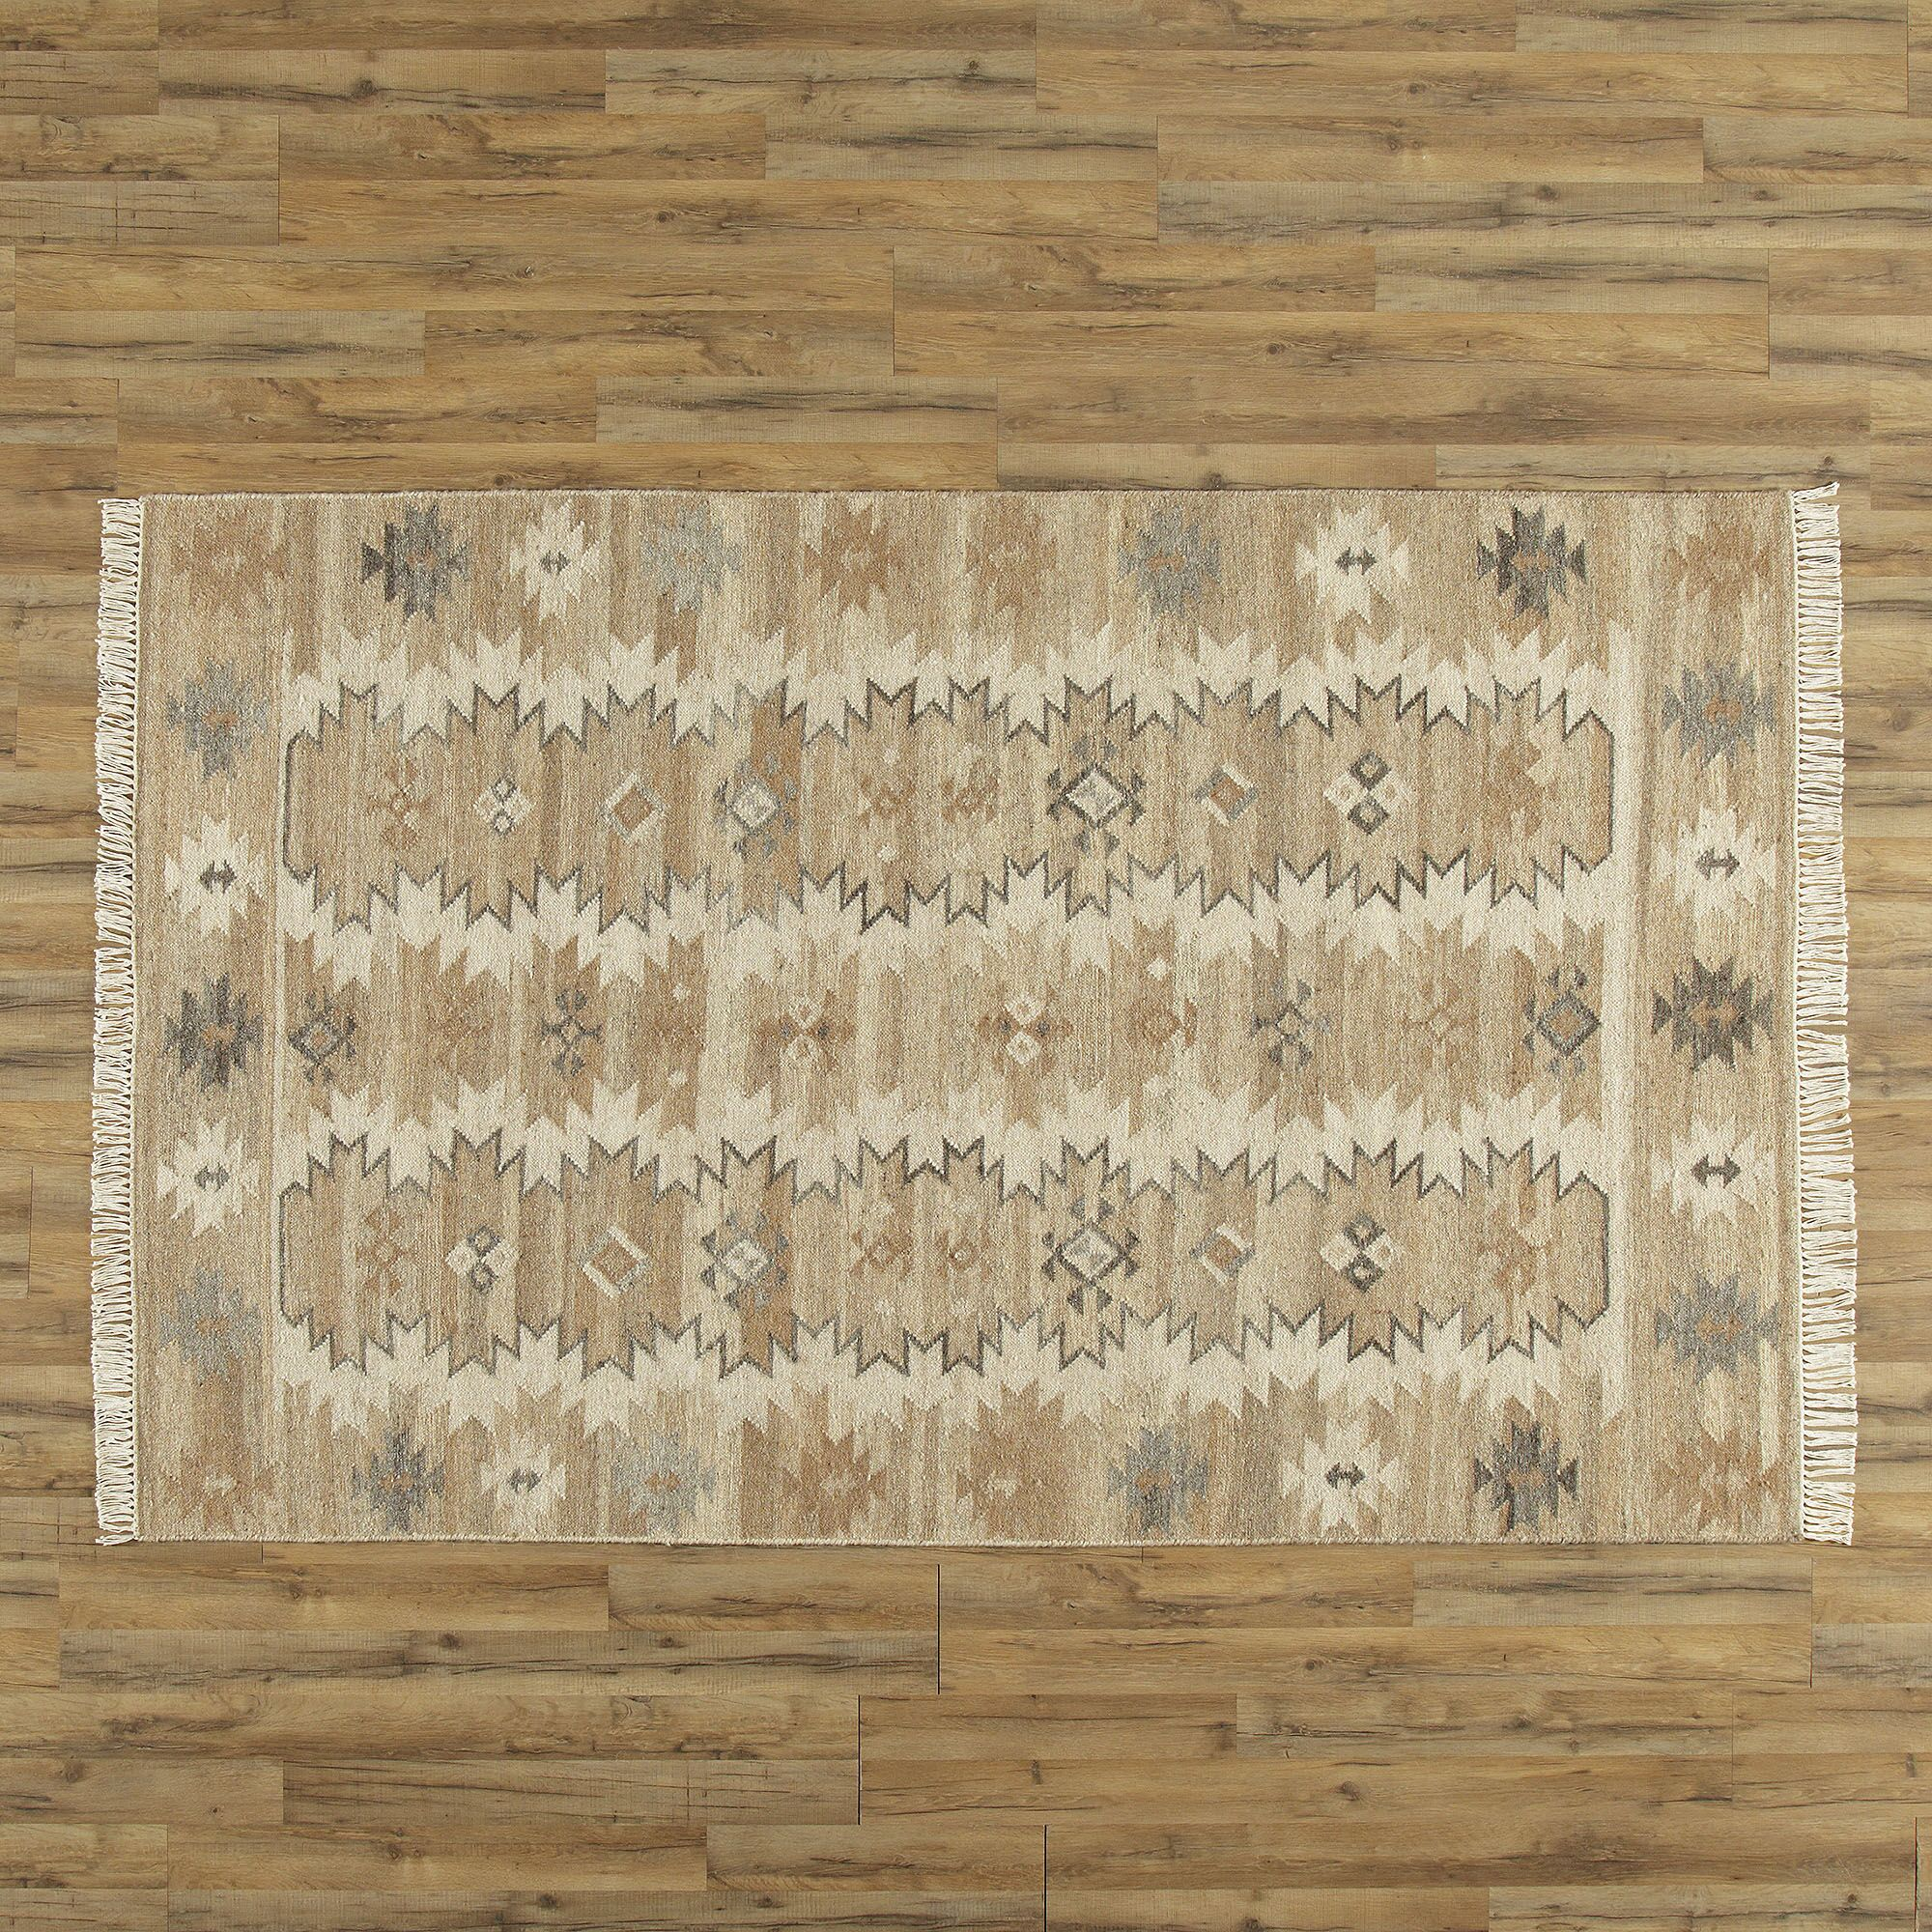 Monterrey Hand-Woven Wool Area Rug Rug Size: Rectangle 3'6